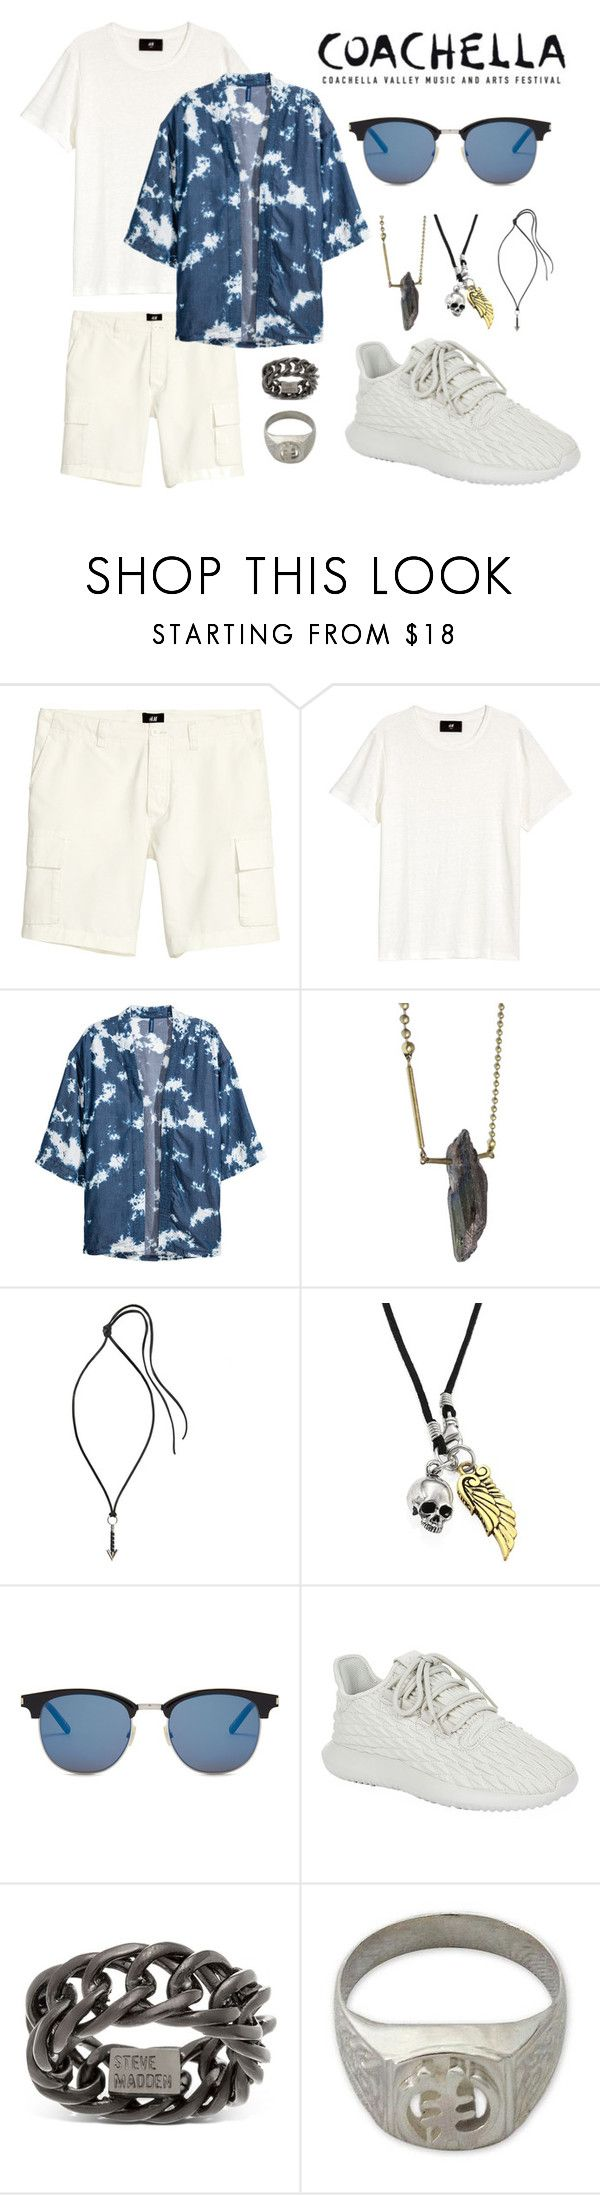 """COACHELLA MEN'S #2"" by akfhxny on Polyvore featuring Isabelle Zumbrunn, Lanvin, King Baby Studio, Yves Saint Laurent, adidas Originals, Steve Madden, NOVICA, men's fashion and menswear"